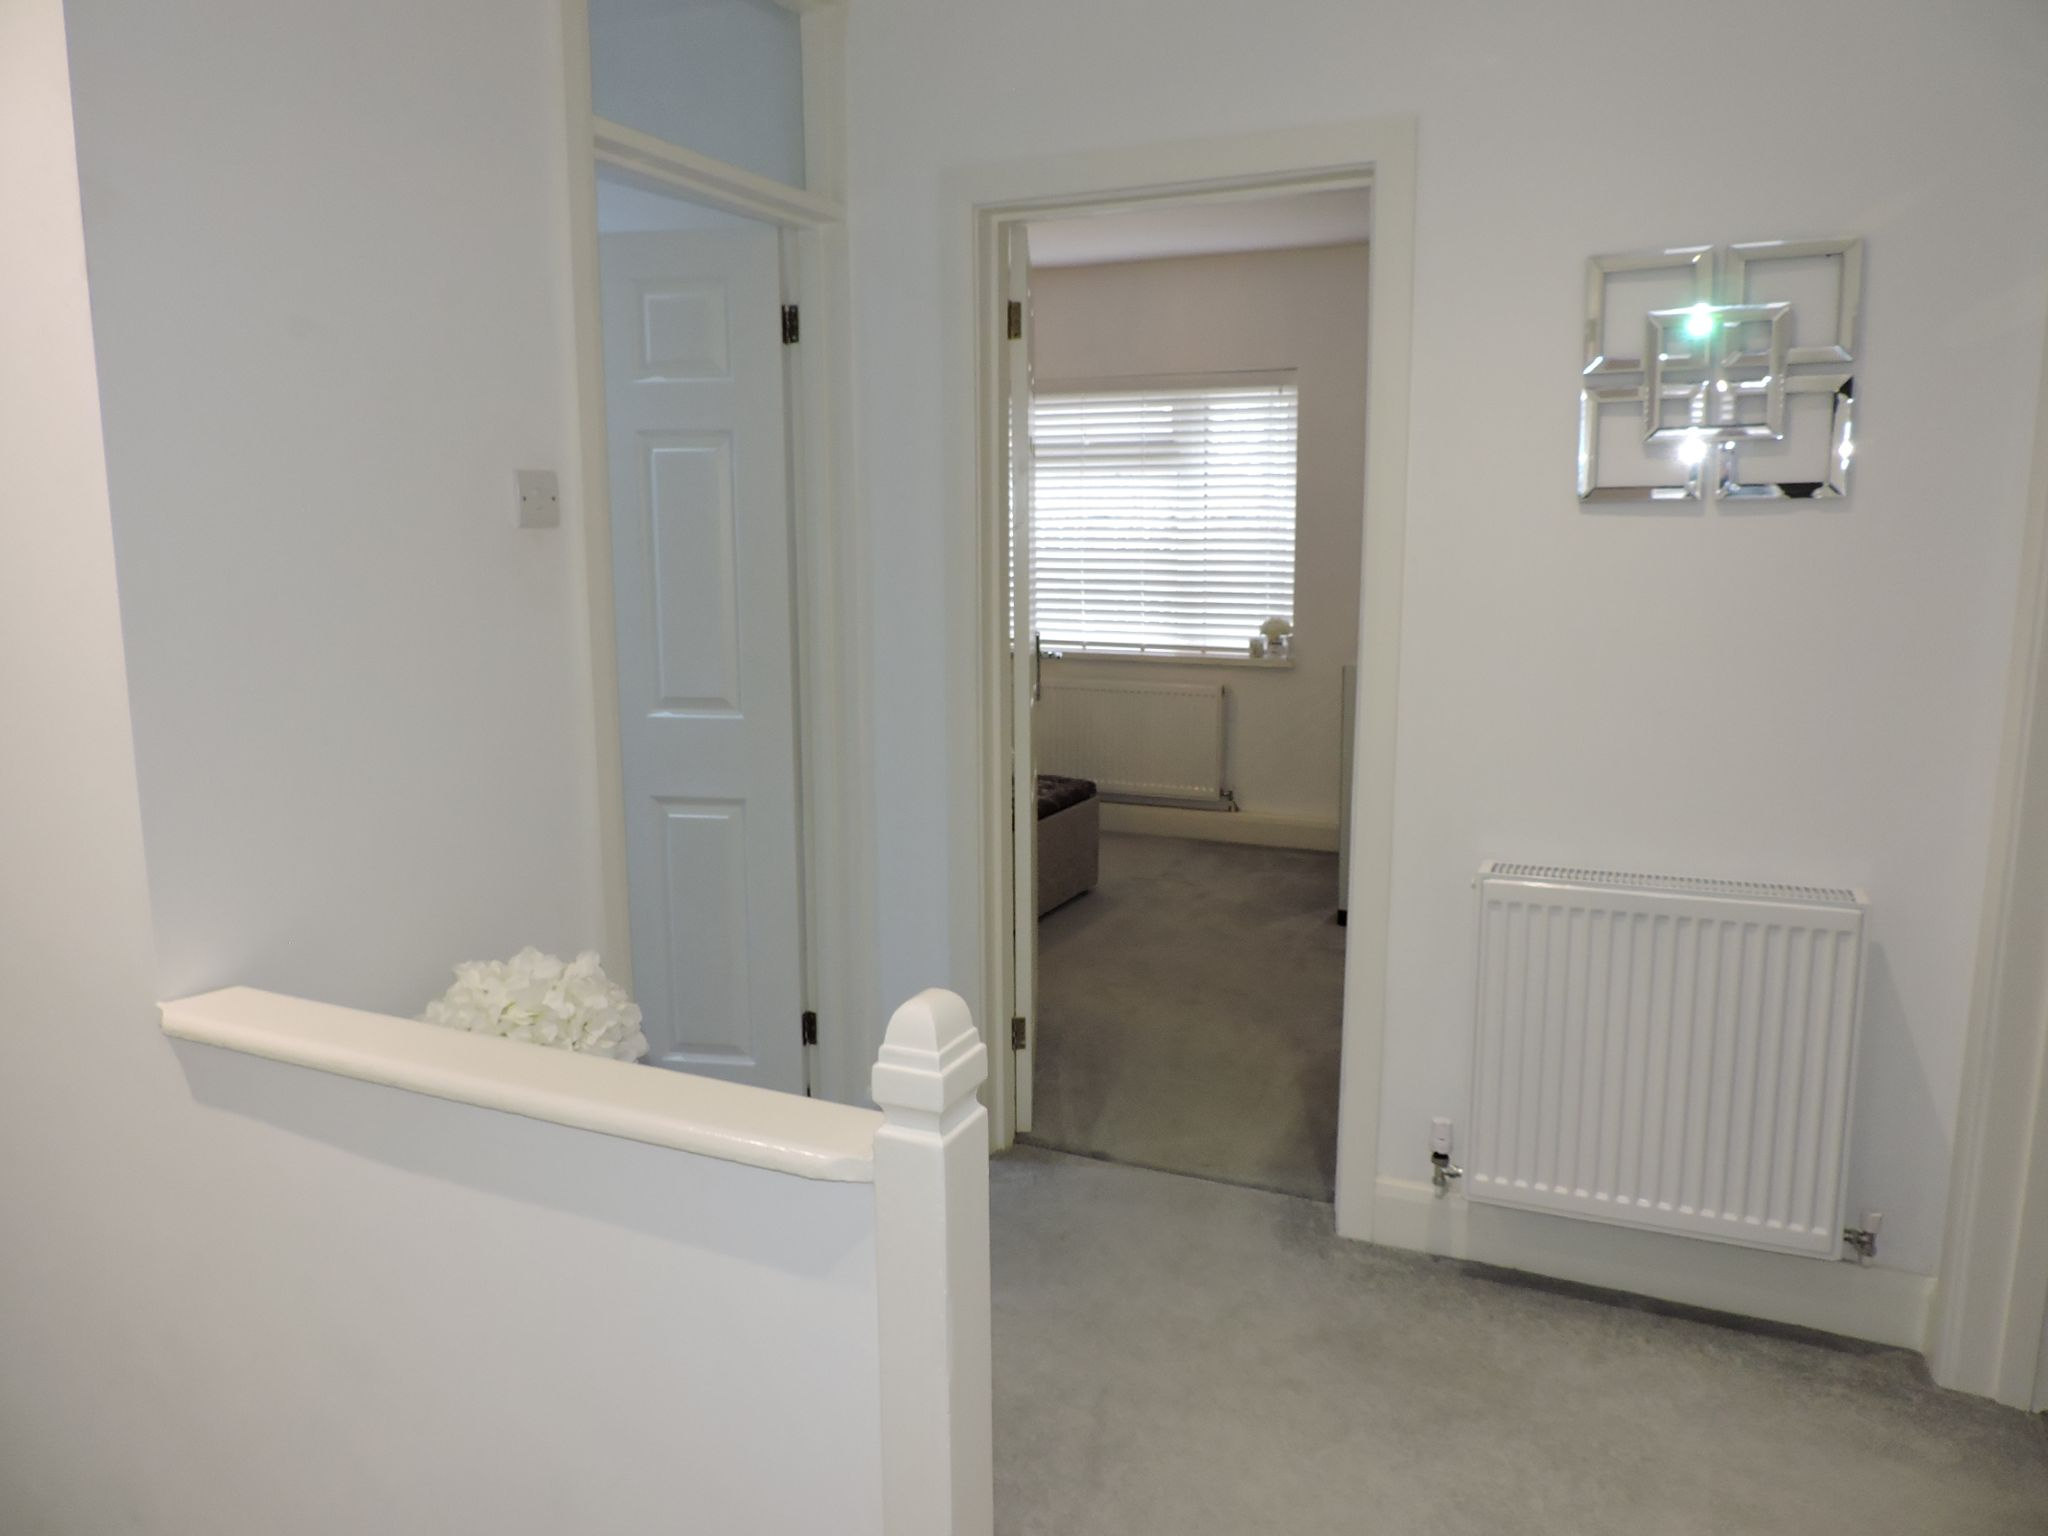 2 bedroom flat flat/apartment Sale Agreed in Epsom - Photograph 2